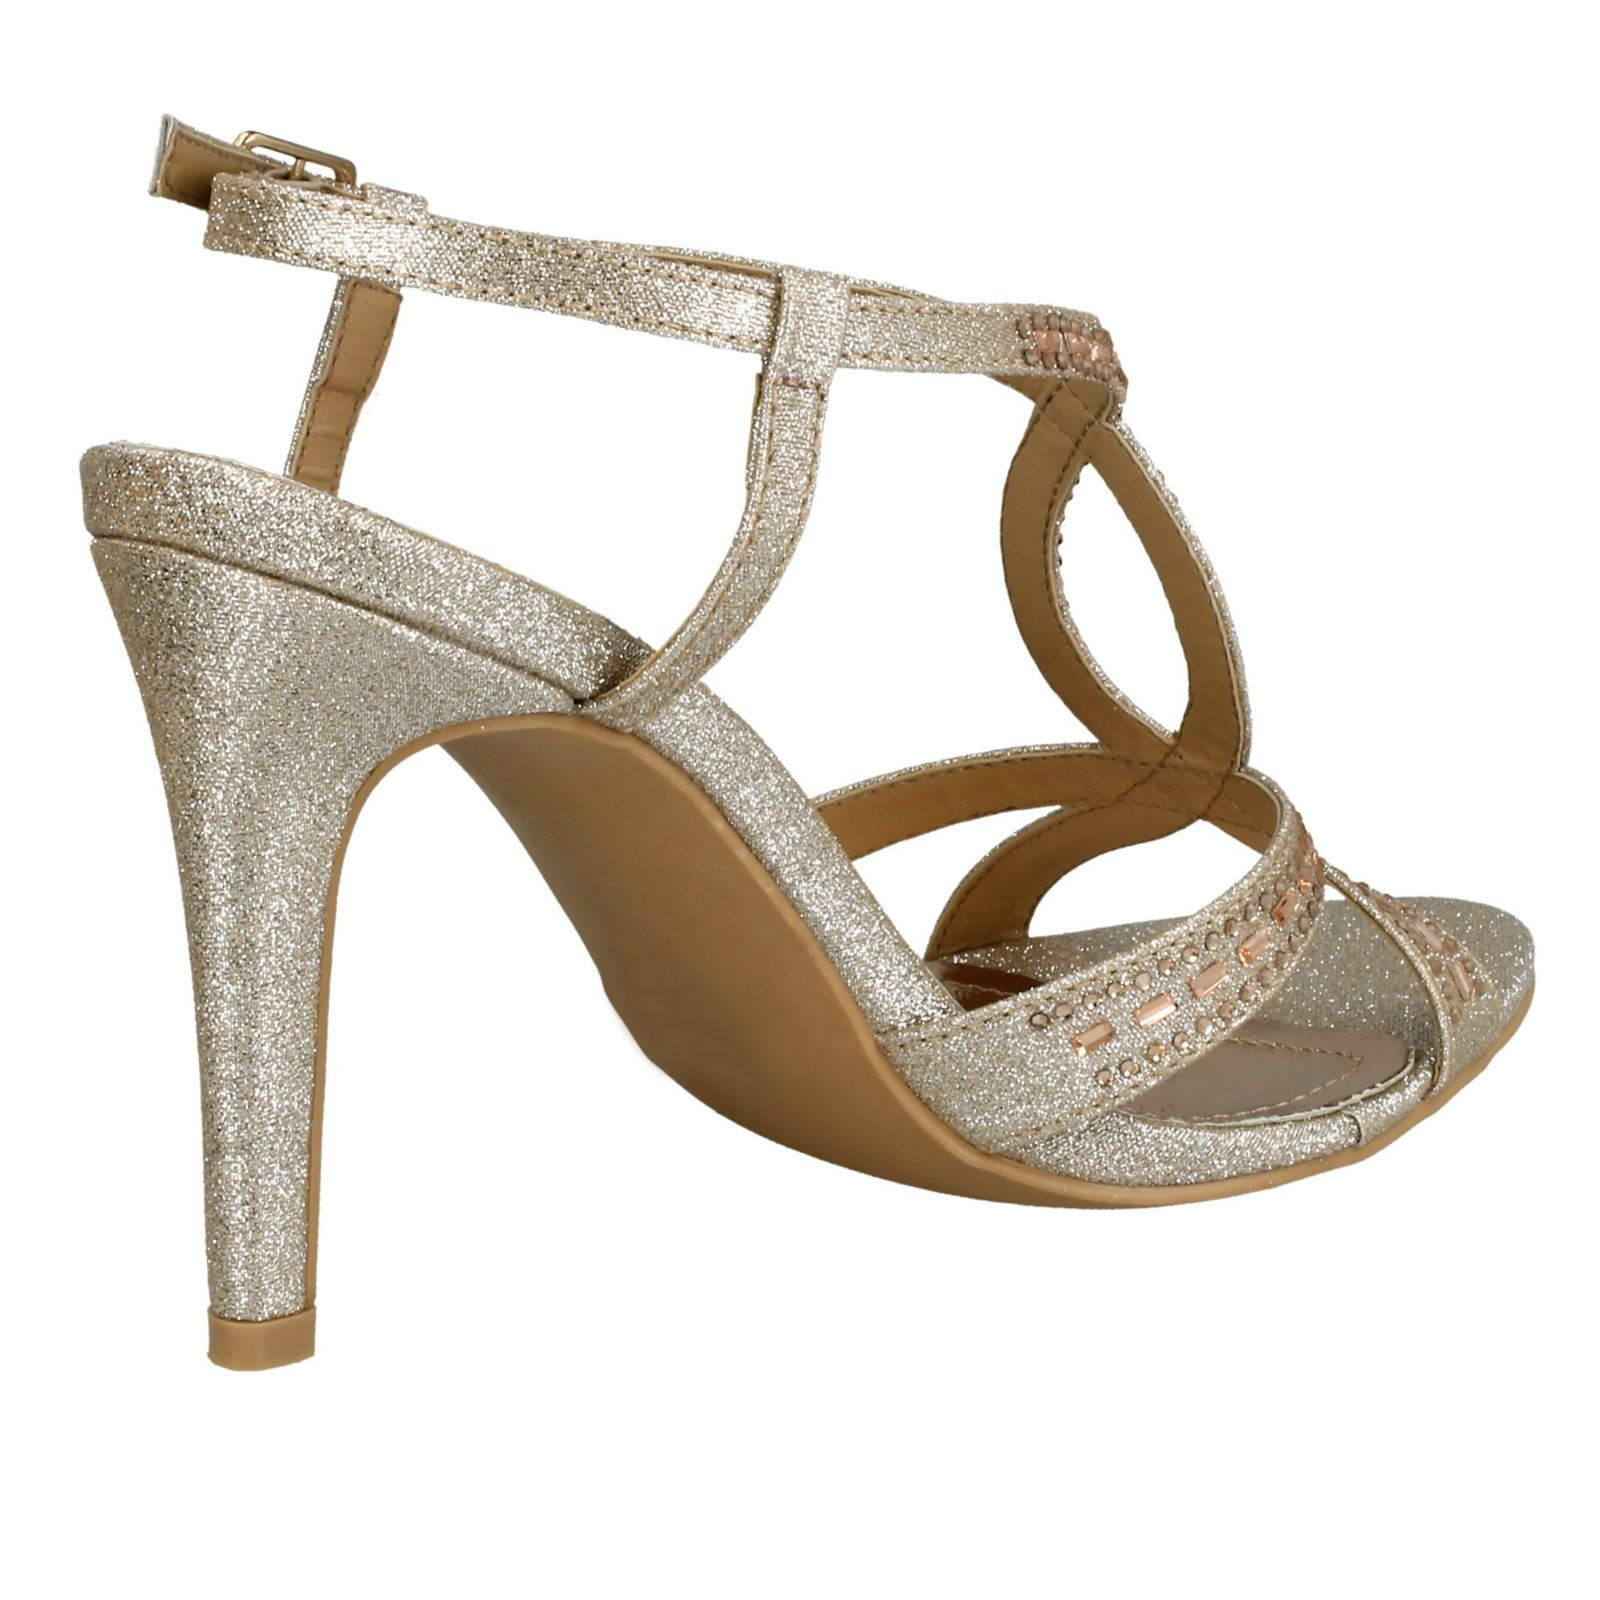 19a5eff18375 Anne-Michelle-Ladies-Jewelled-Strappy-Sandals thumbnail 9